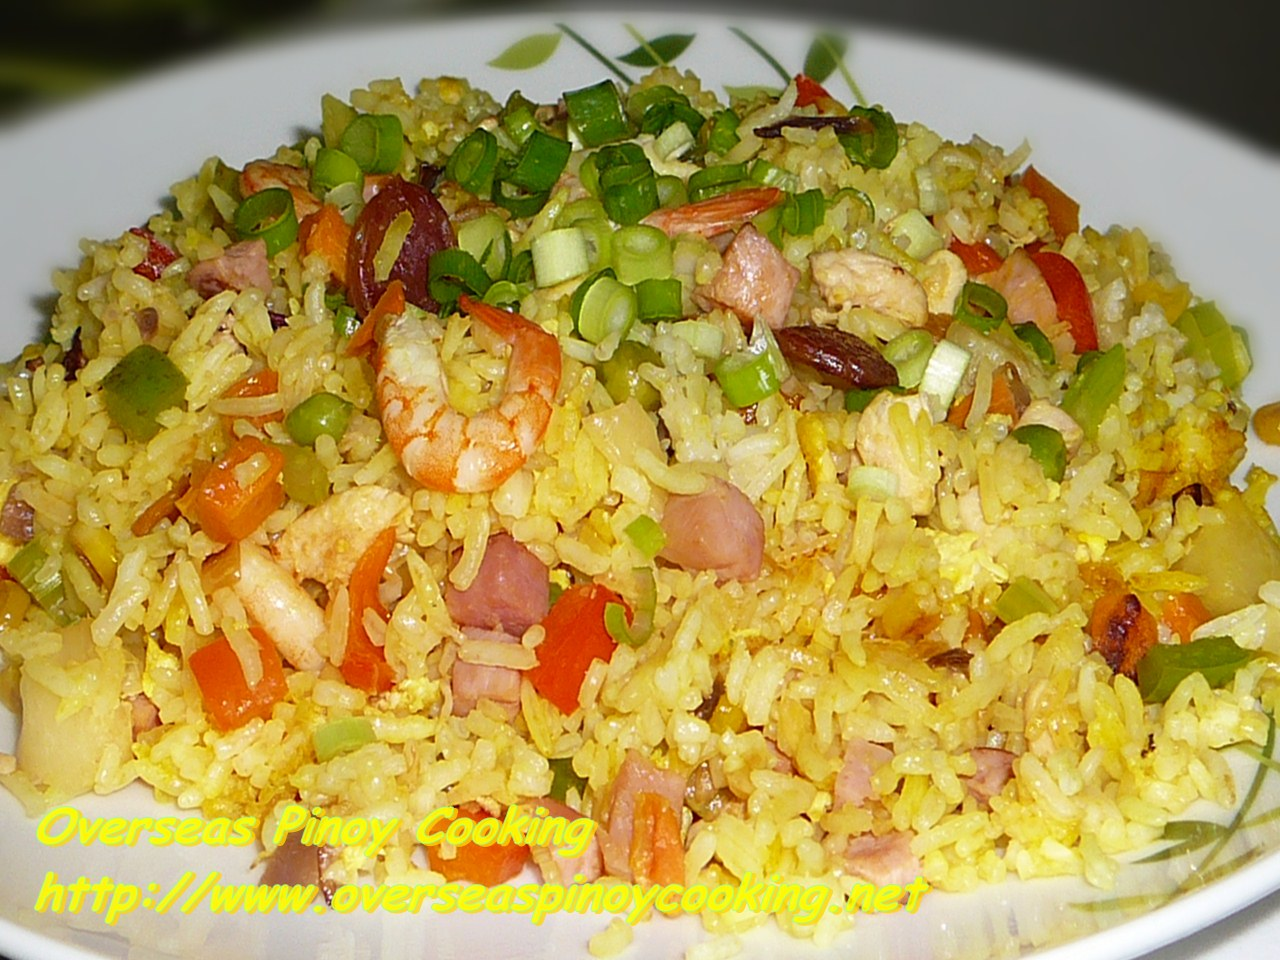 pineapple fried rice is a popular stir fried rice that uses pineapple ...